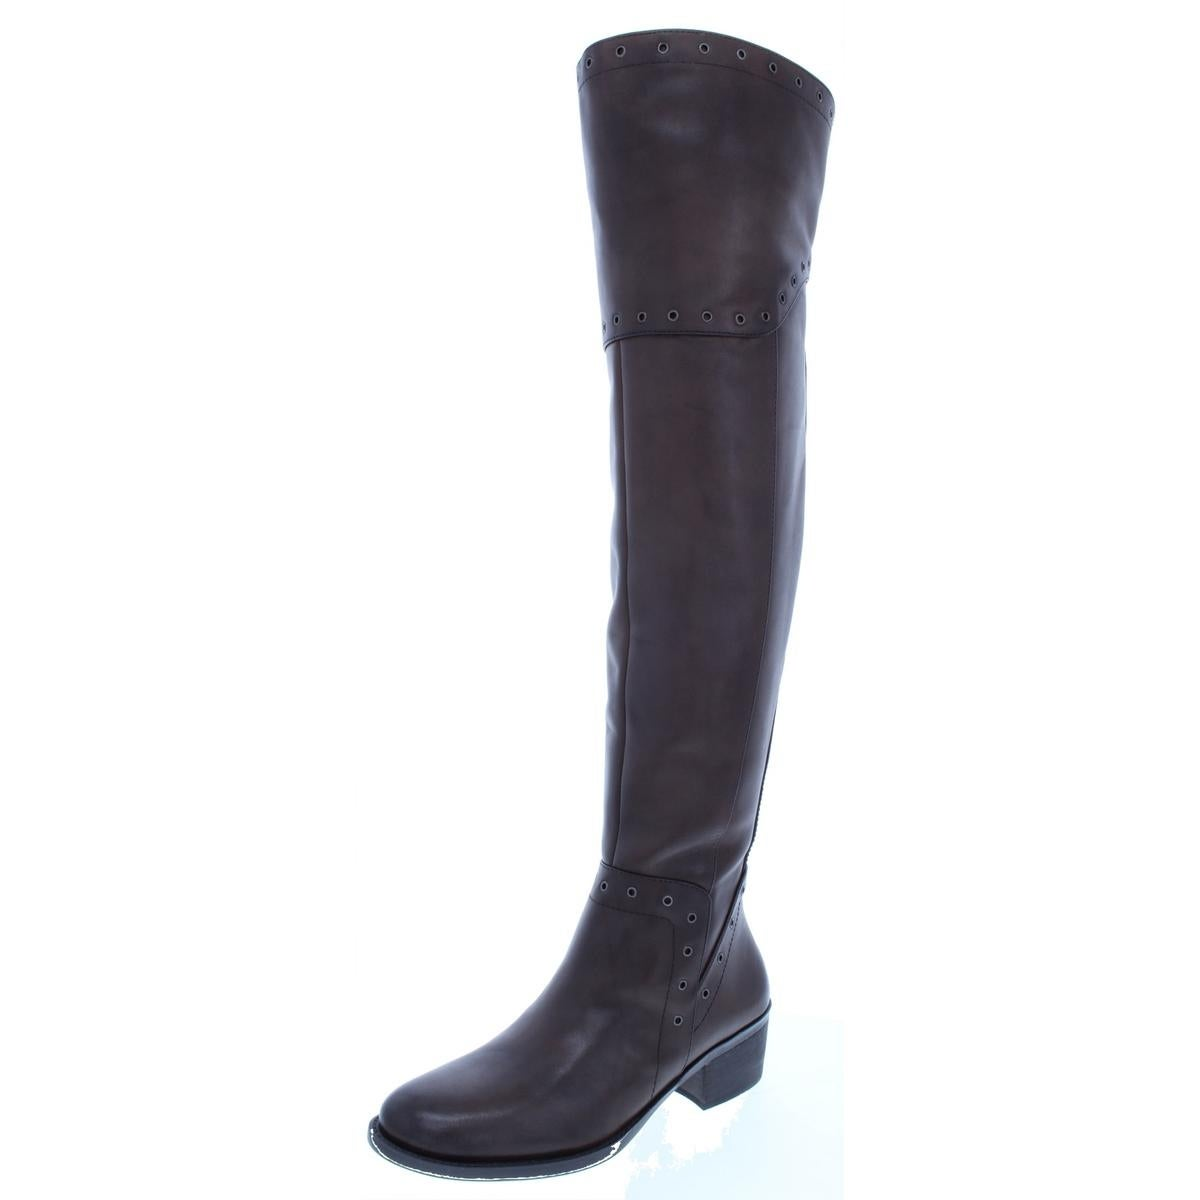 8f62bda977a4 Shop Vince Camuto Womens Bestan Over-The-Knee Boots Leather Almond Toe -  Free Shipping Today - Overstock.com - 23566953